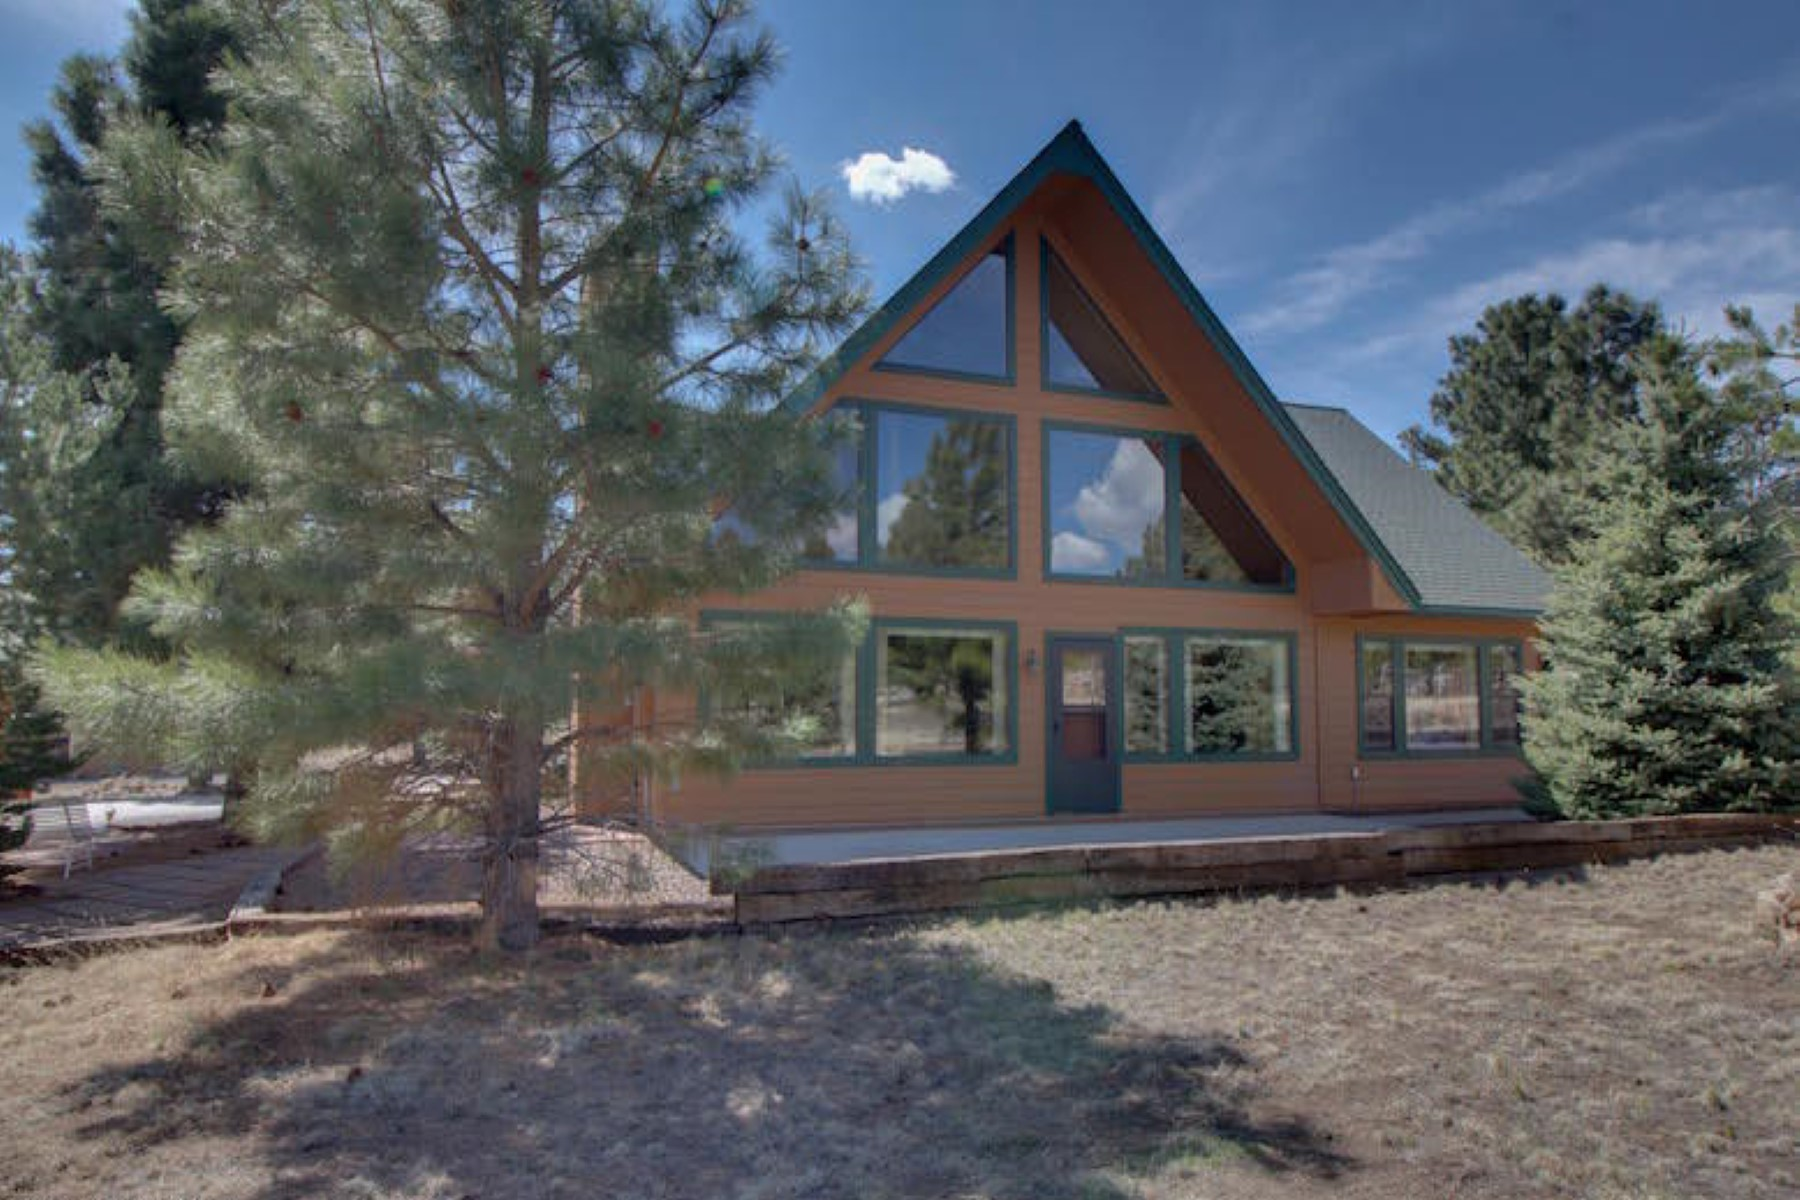 Single Family Home for Sale at Enjoy nature at this beautiful private mountain home 12565 N Copeland LN Flagstaff, Arizona 86004 United States